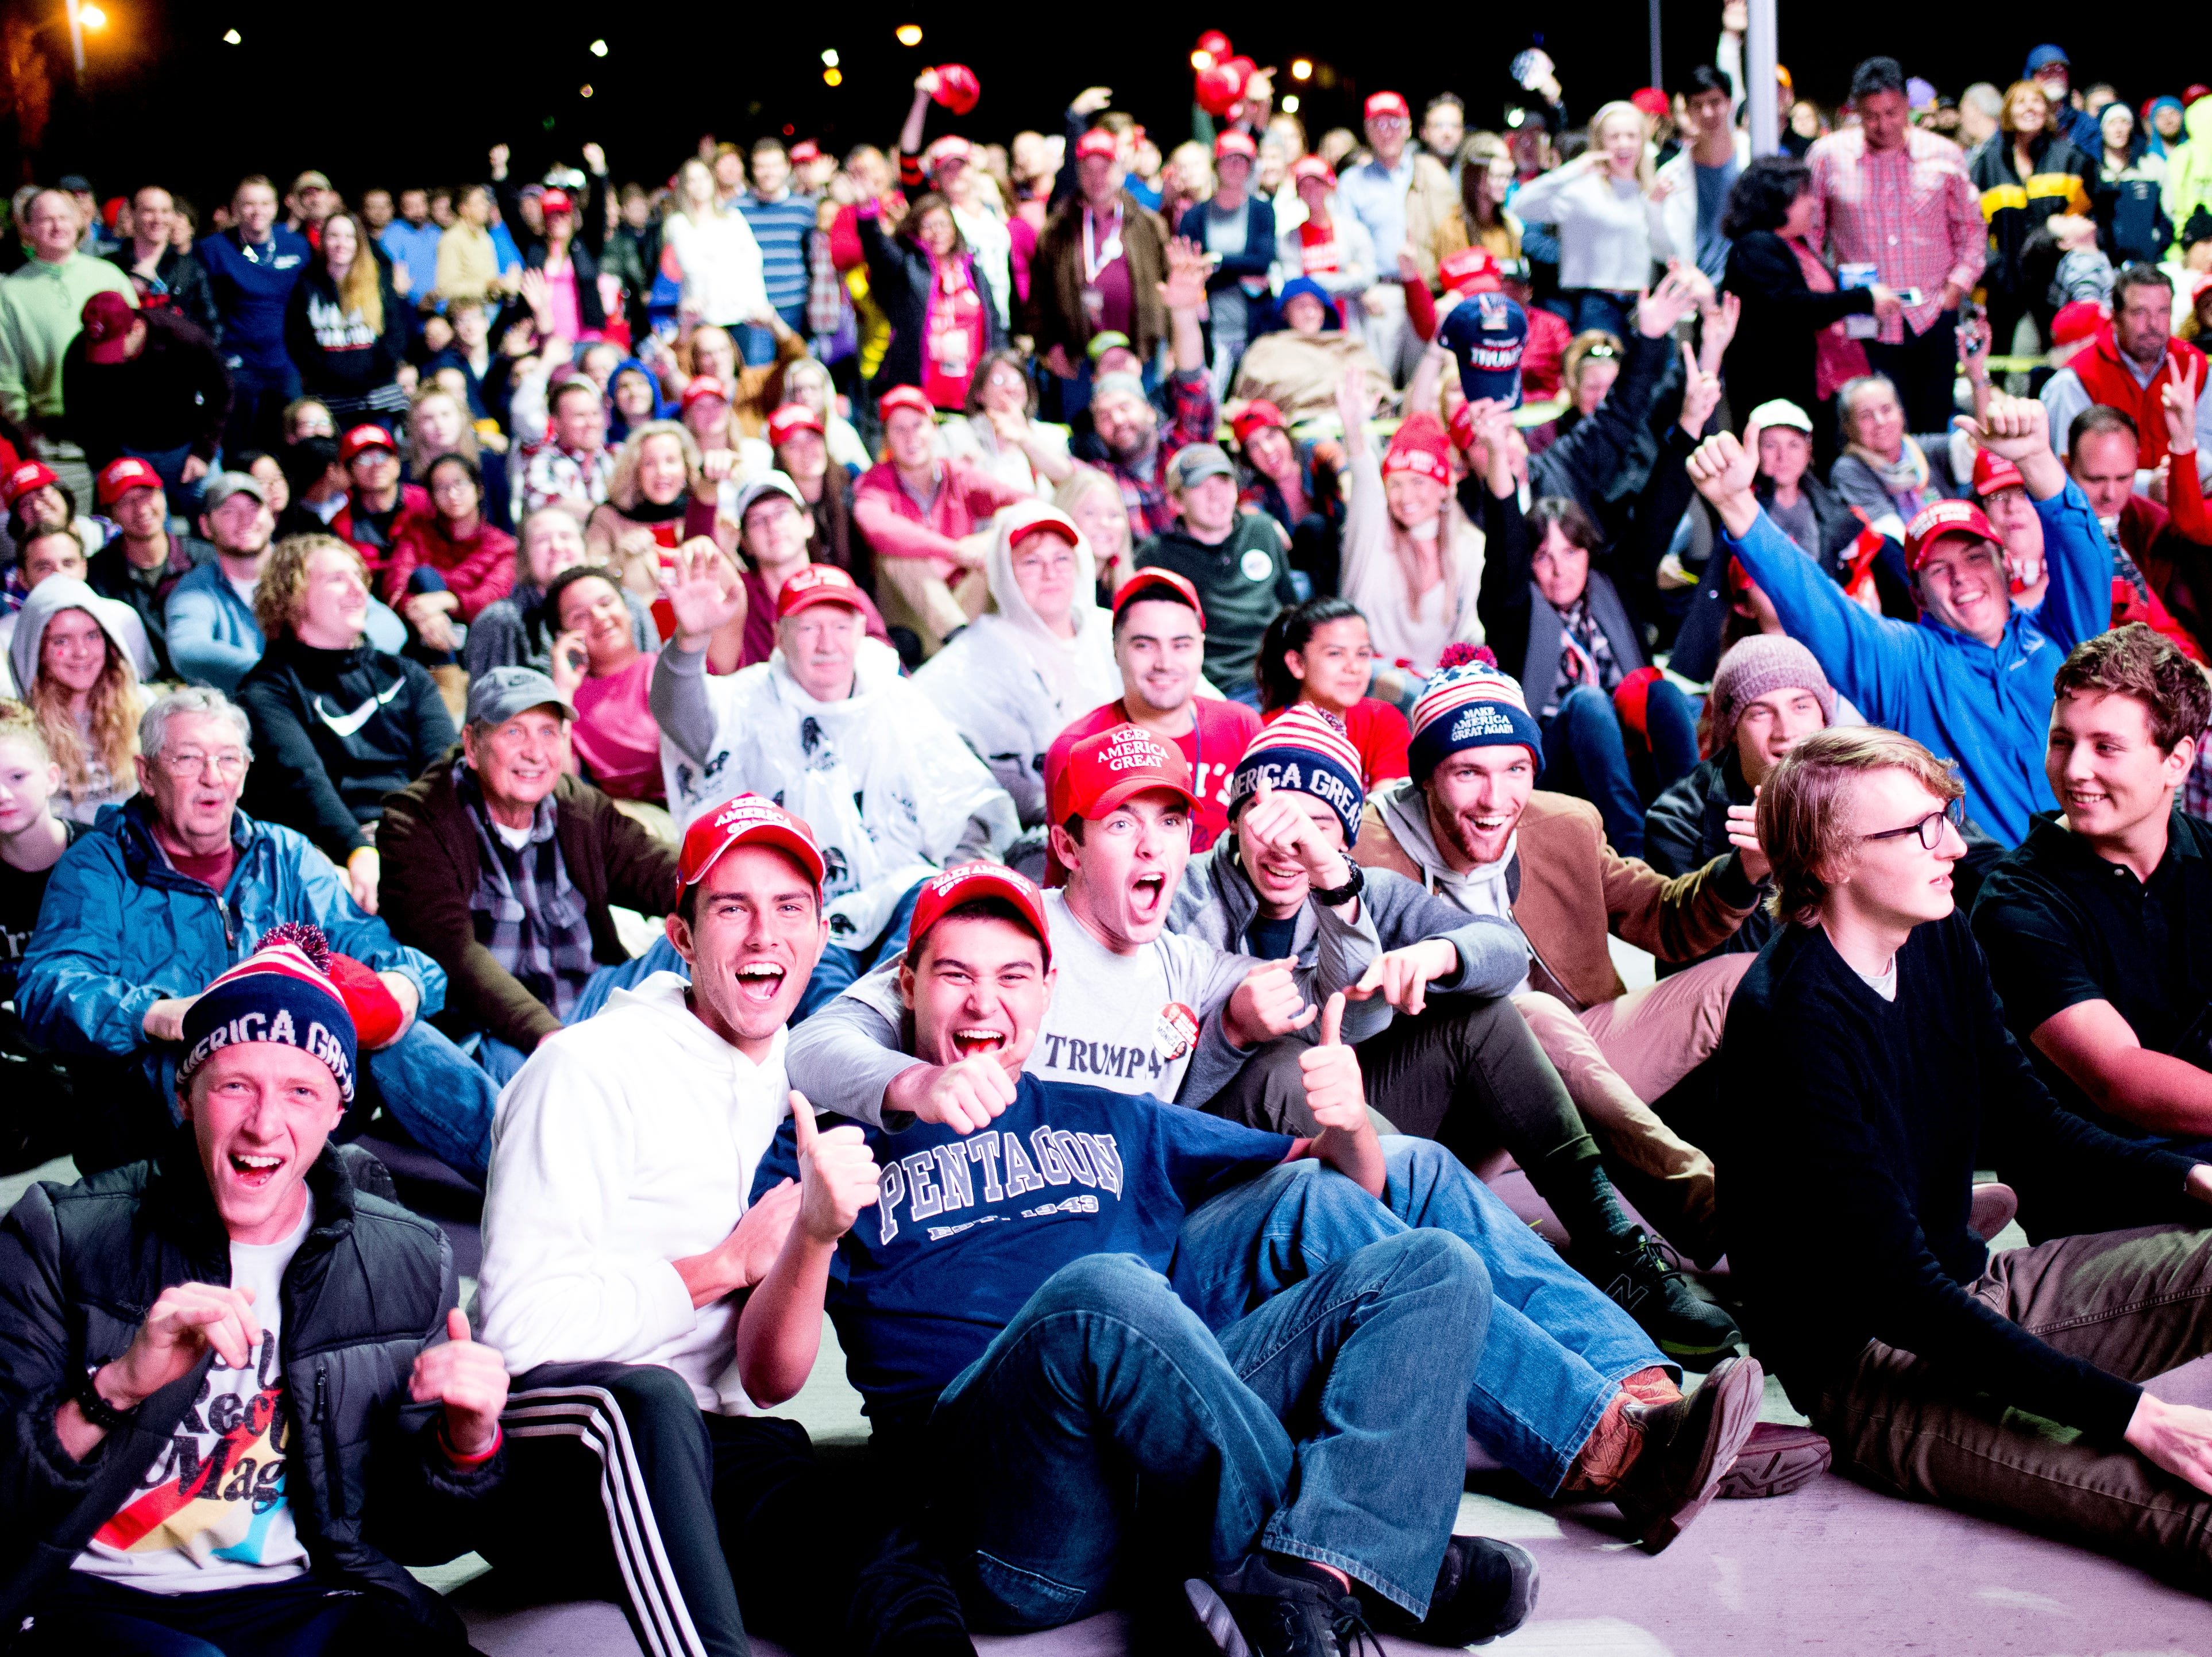 """Trump supporters cheer during President Donald J. Trump's """"Make America Great Again"""" Rally at McKenzie Arena in Chattanooga, Tennessee on Sunday, November 4, 2018."""